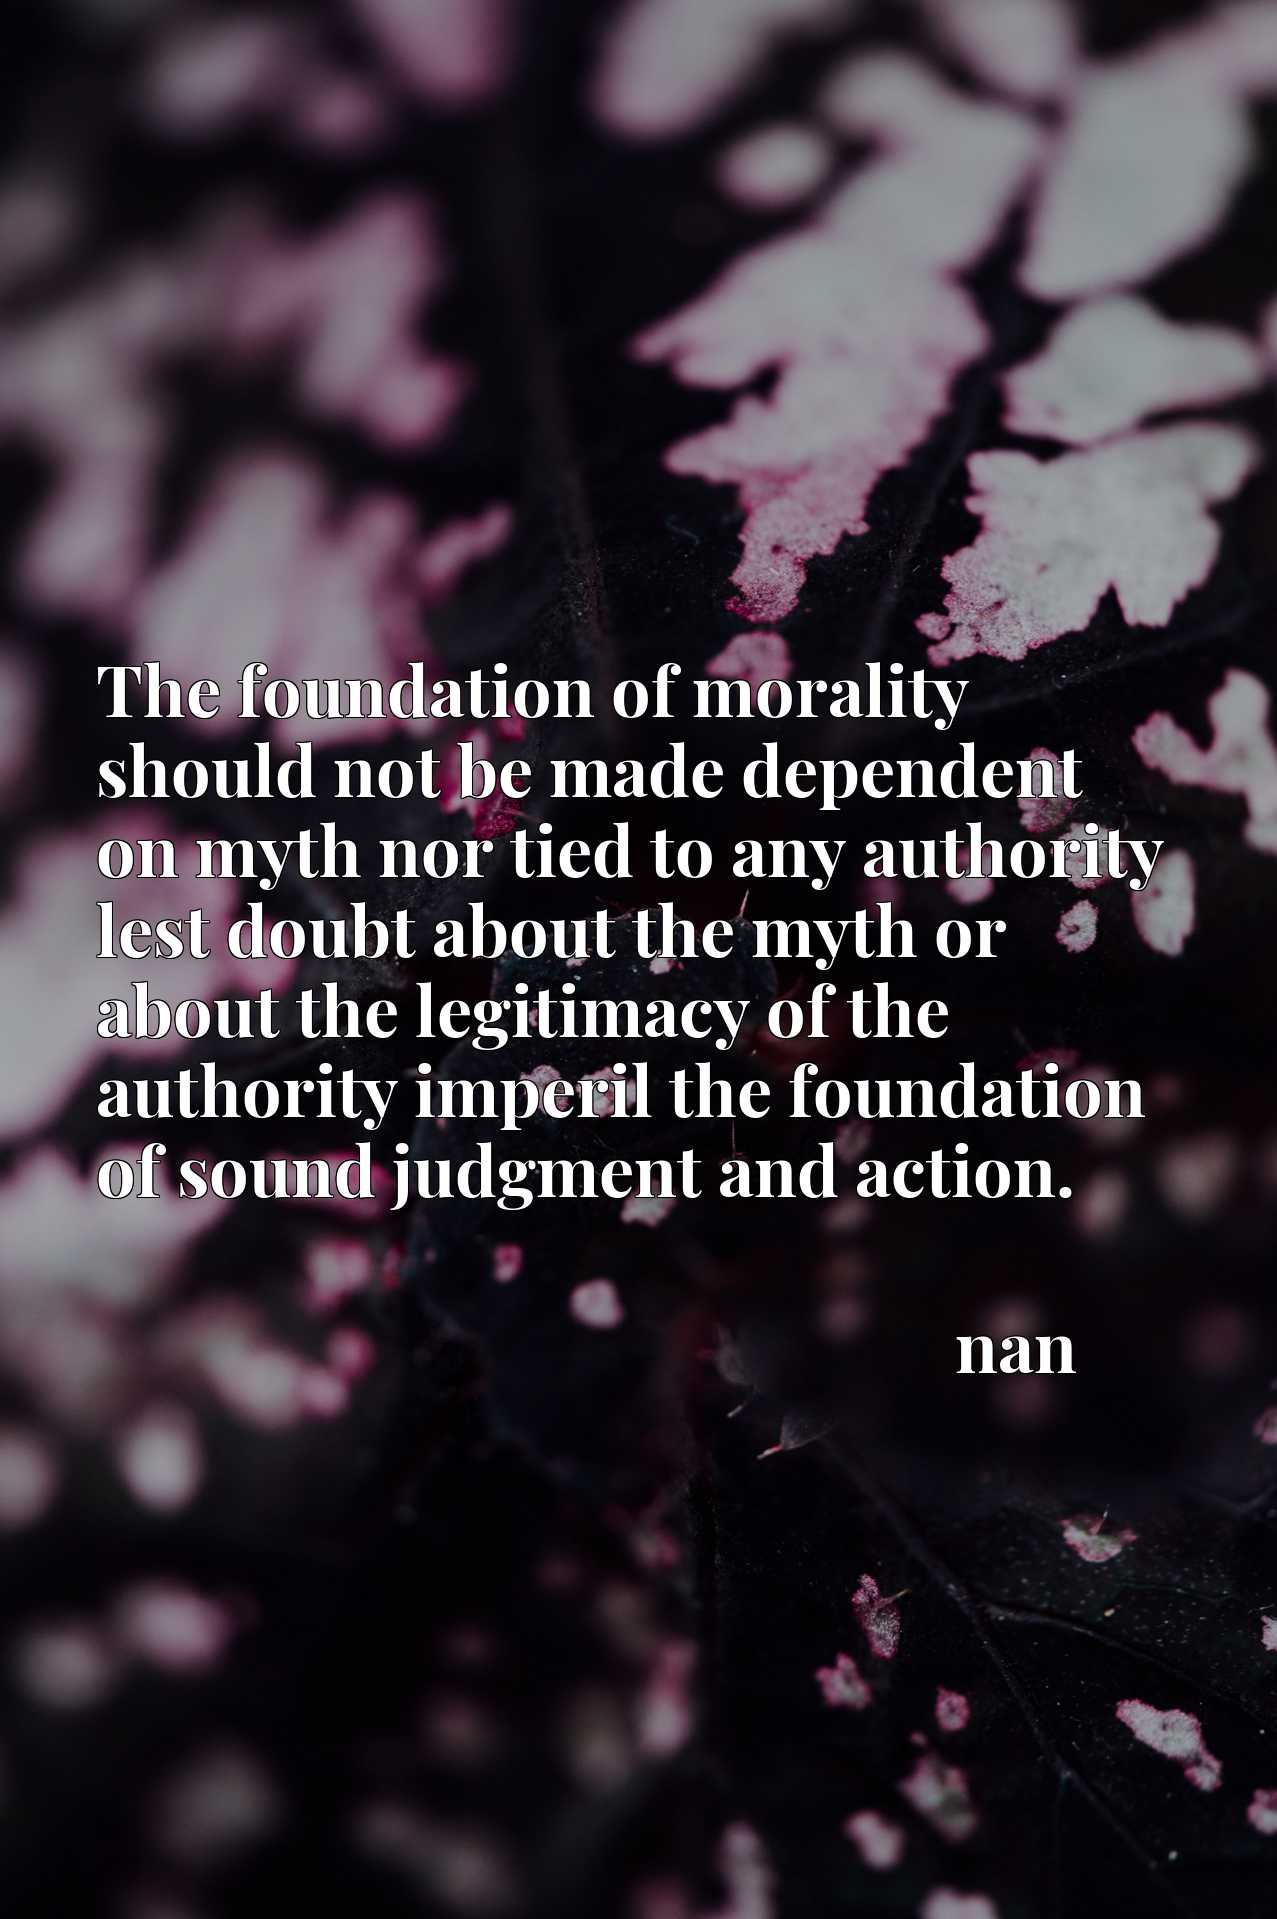 The foundation of morality should not be made dependent on myth nor tied to any authority lest doubt about the myth or about the legitimacy of the authority imperil the foundation of sound judgment and action.